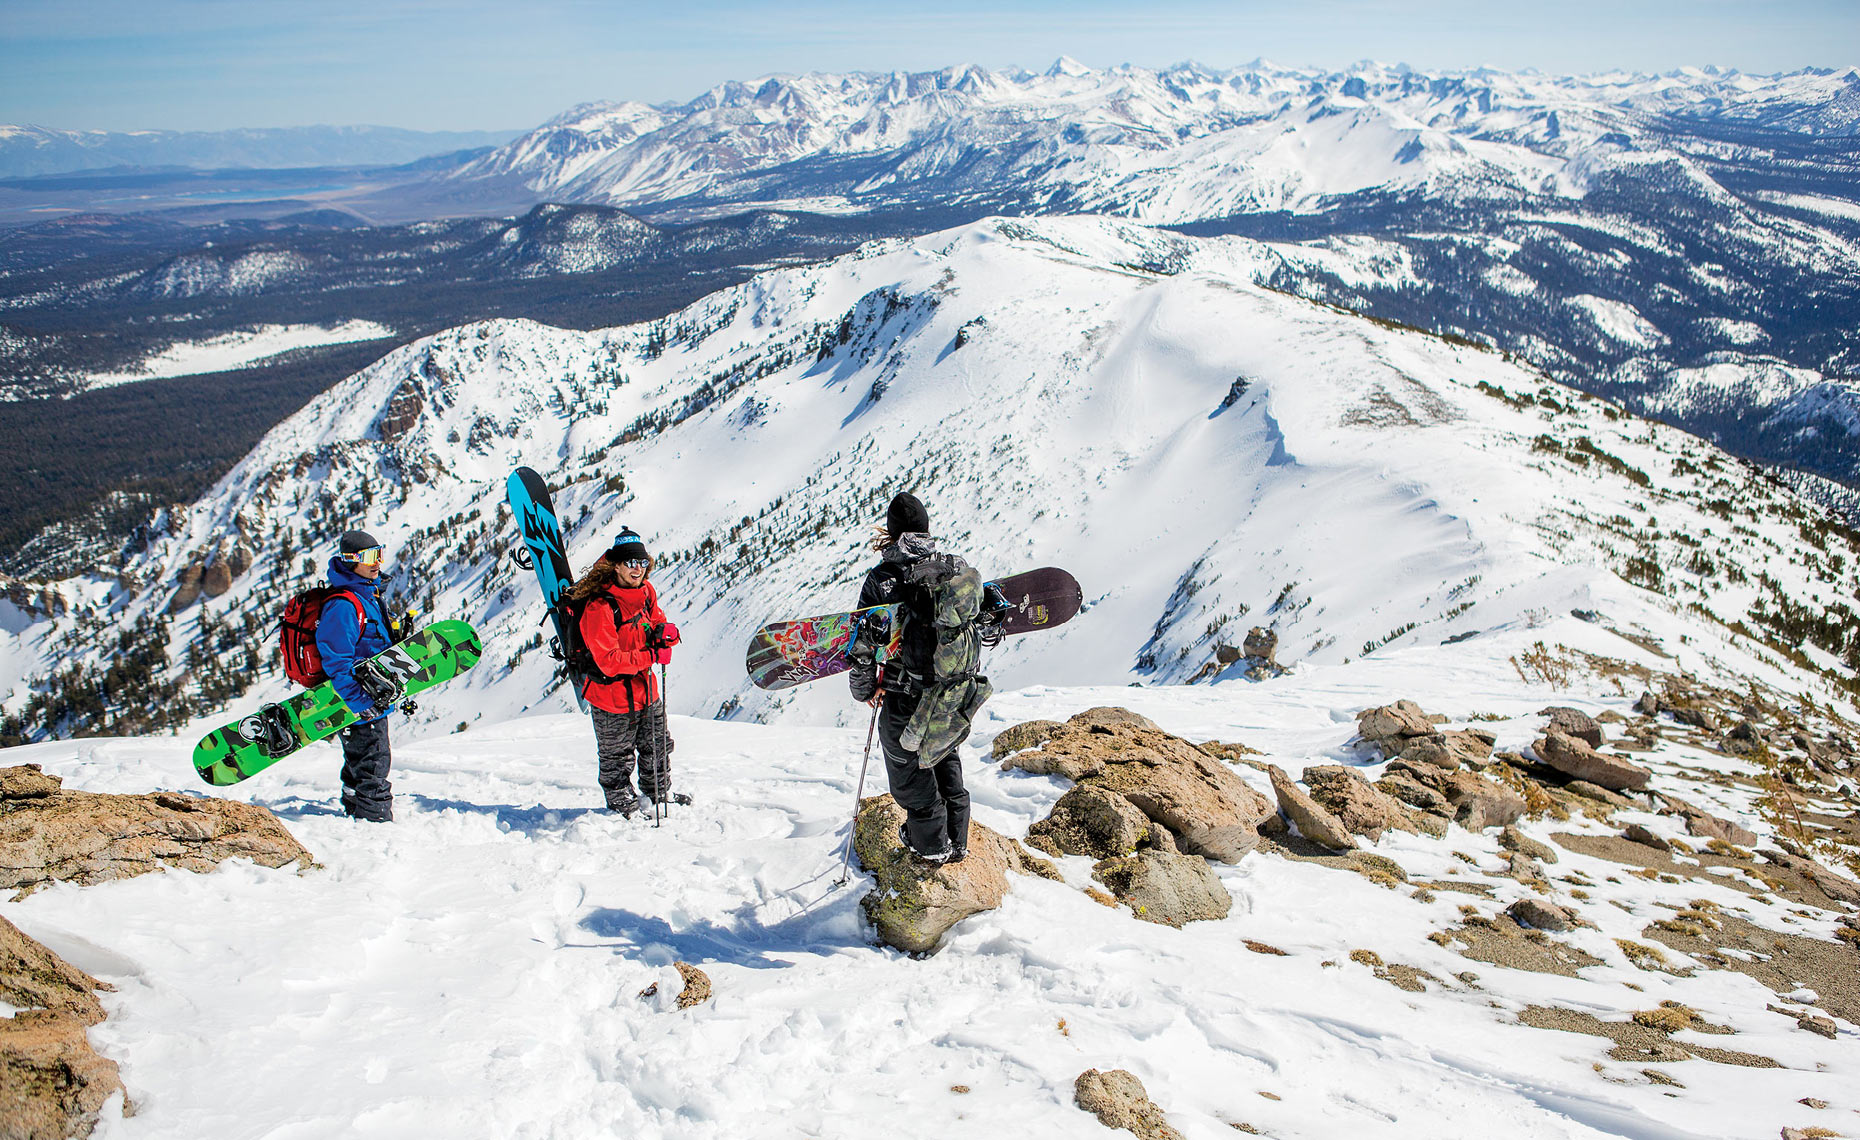 Phantom-Lifts-June-To-Mammoth-TWSNOW-Chris-Wellhausen-11